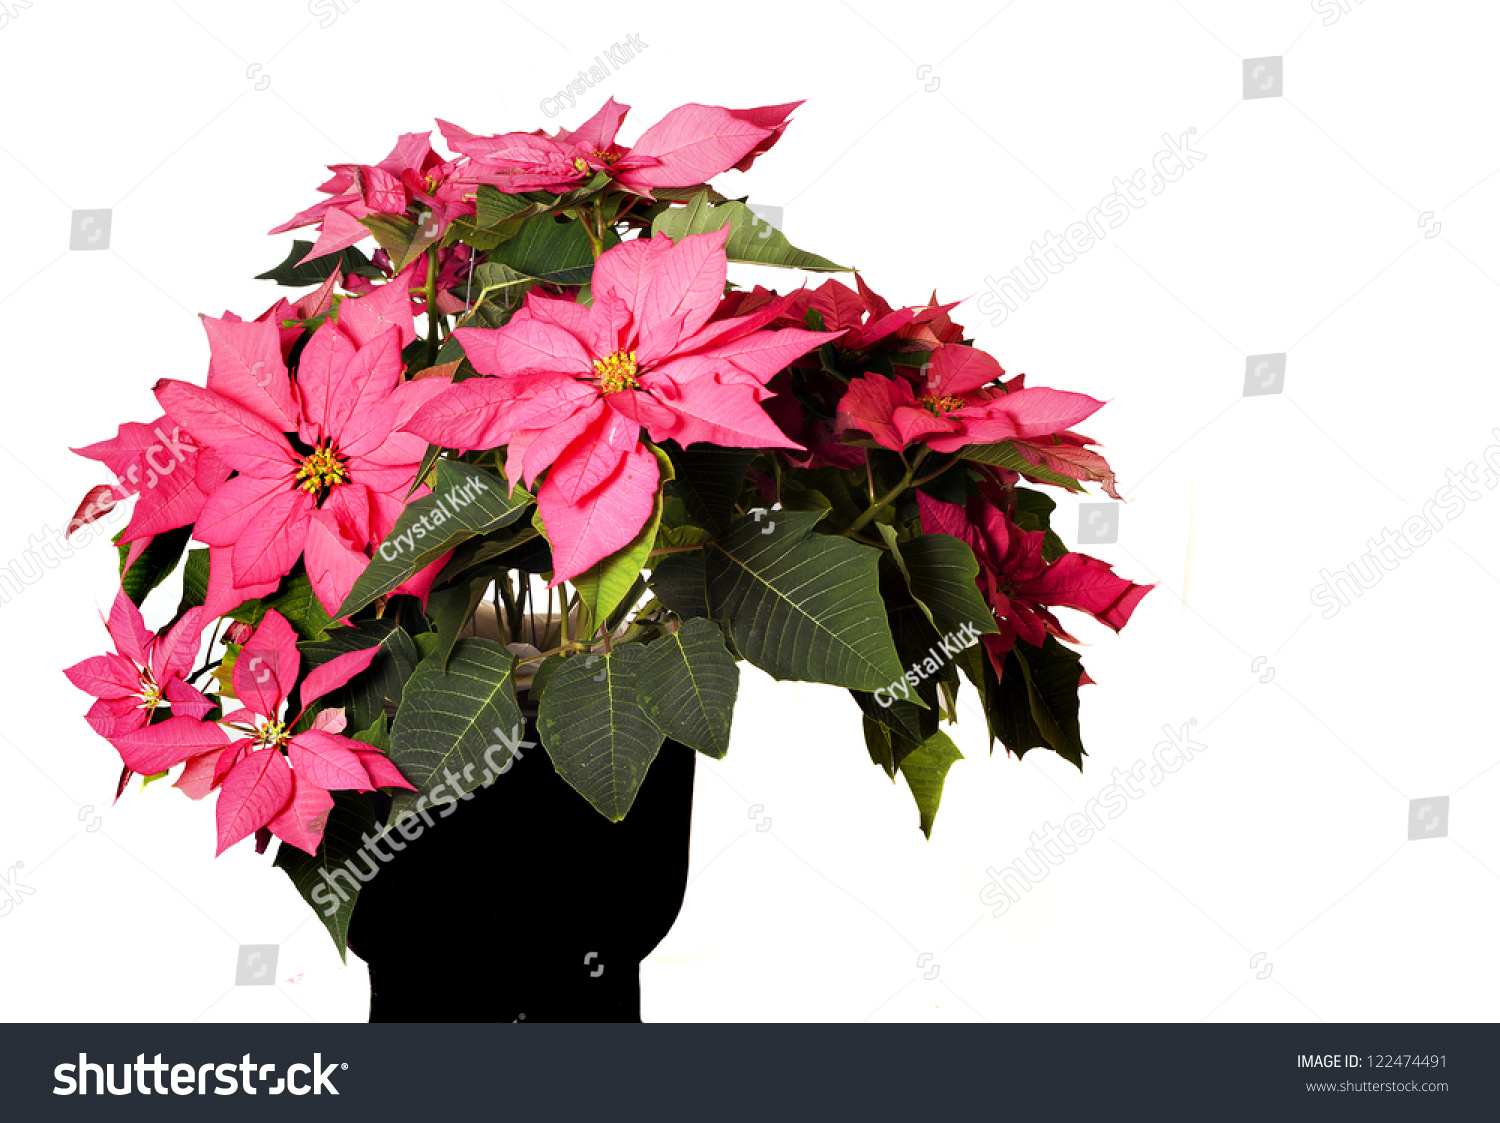 A Beautiful Pink Christmas Poinsettia Flower In A Black Vase And